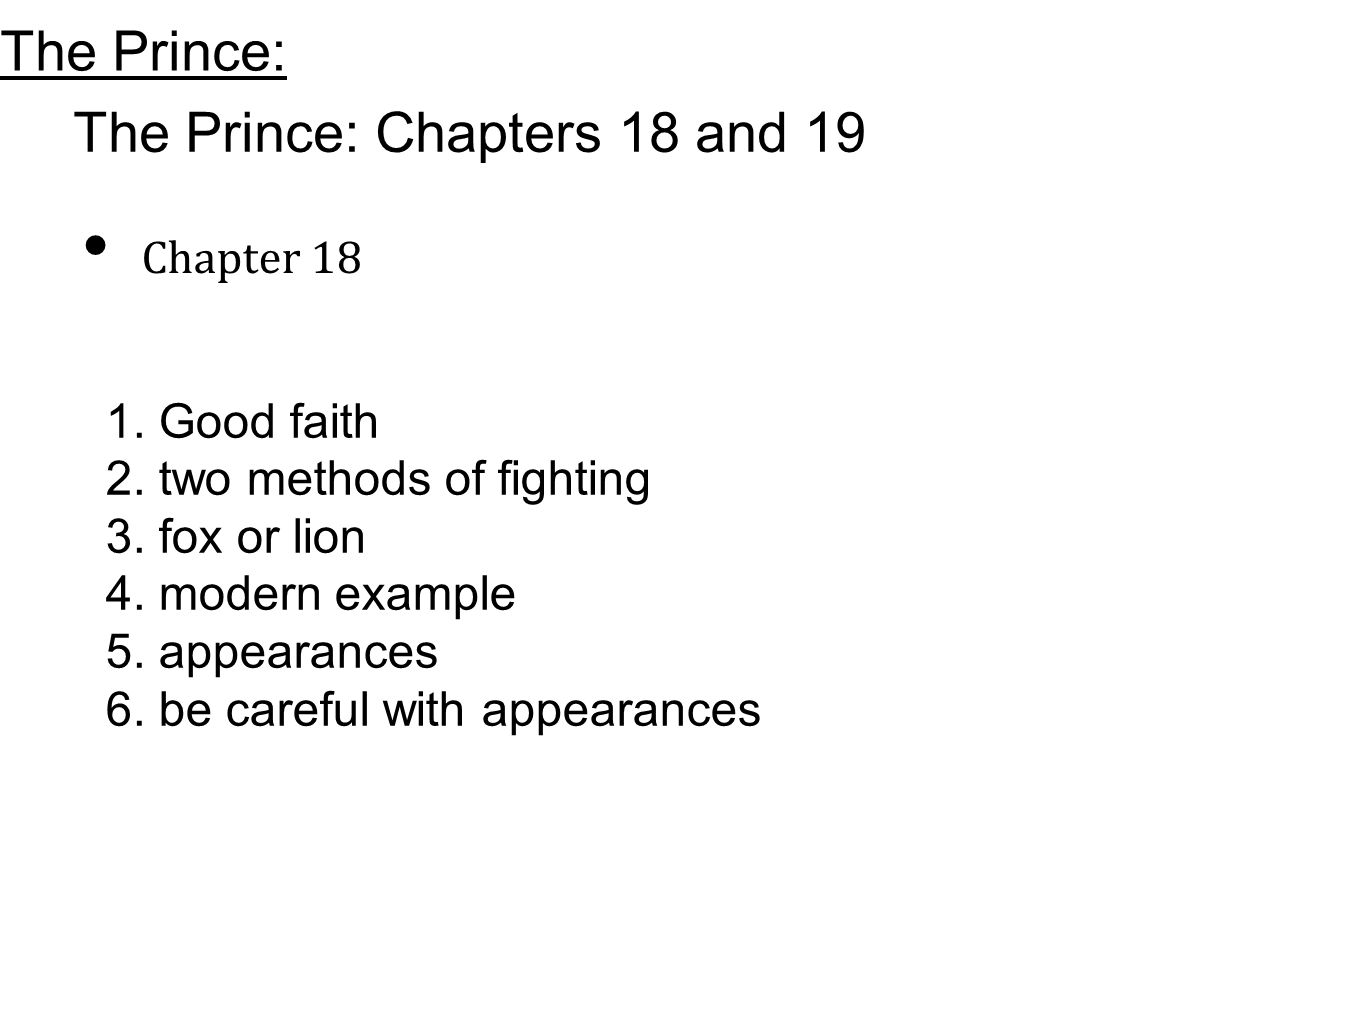 machiavelli the prince chapters 15 18 thesis Machiavelli and modern business uploaded by alexandra al related interests niccolò machiavelli the prince enron leadership leadership & mentoring rating and.